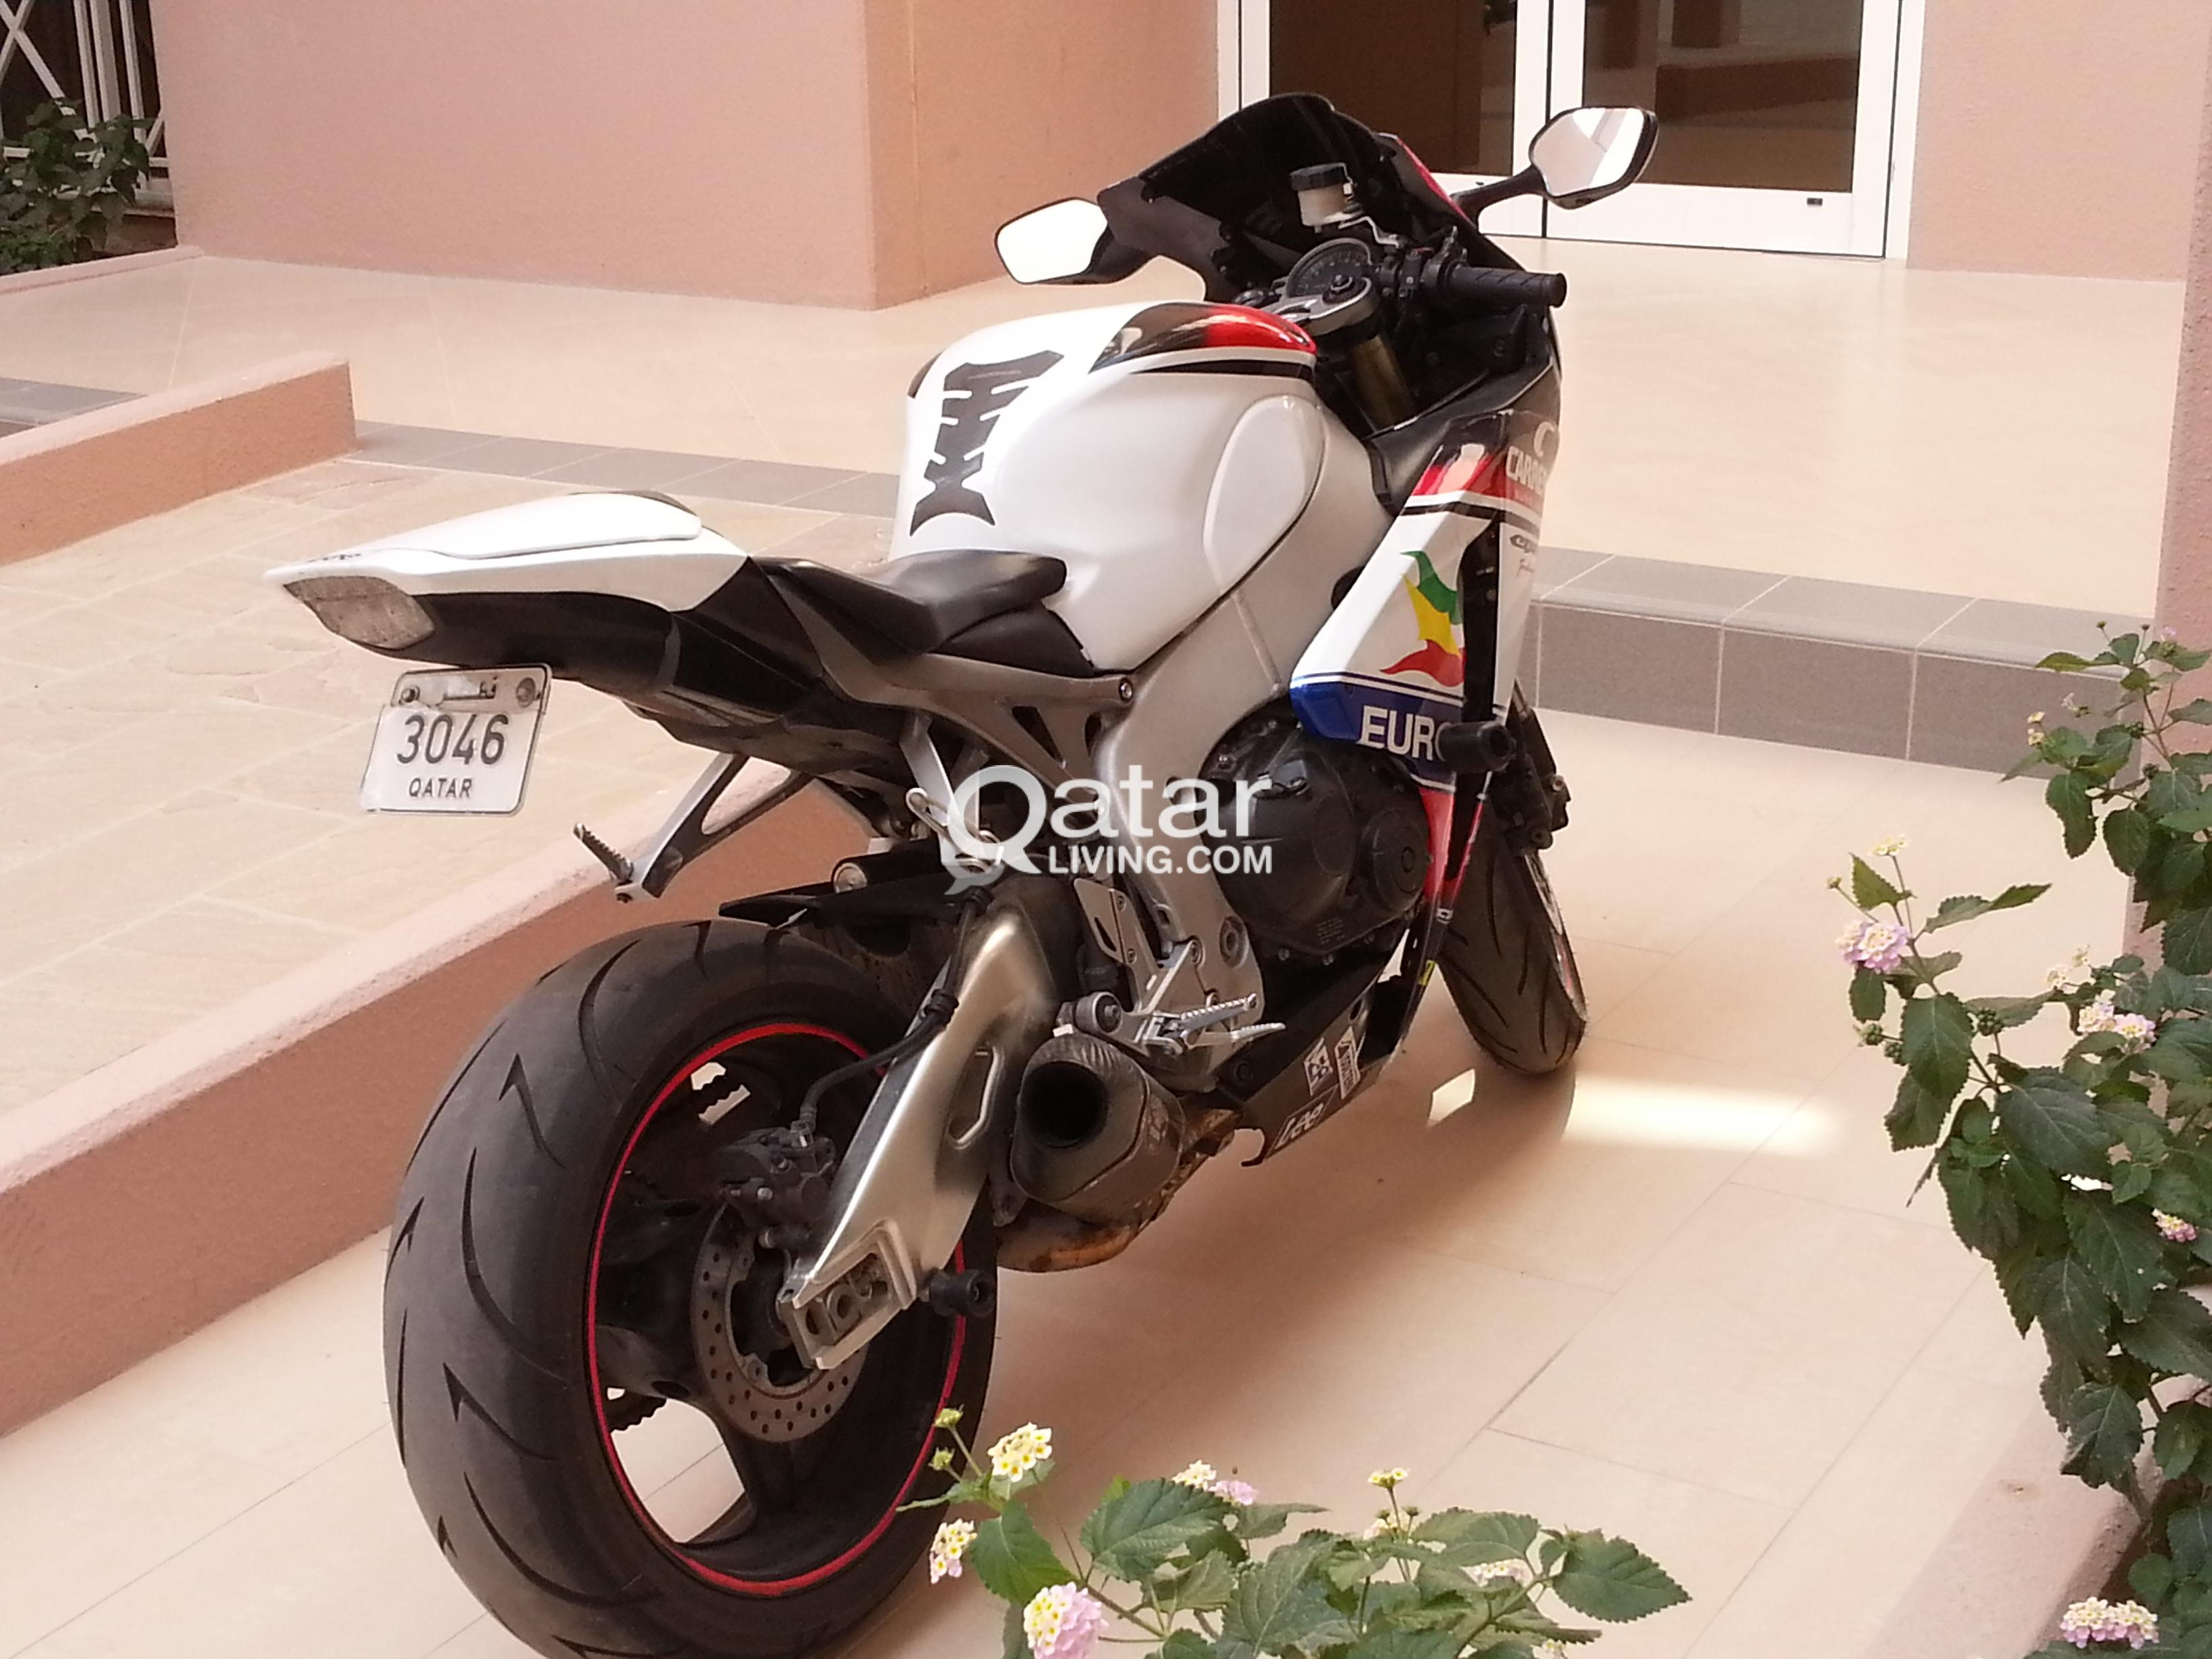 Super 1000Cc Honda Cbr Fireblade 2011 Qatar Living Gmtry Best Dining Table And Chair Ideas Images Gmtryco